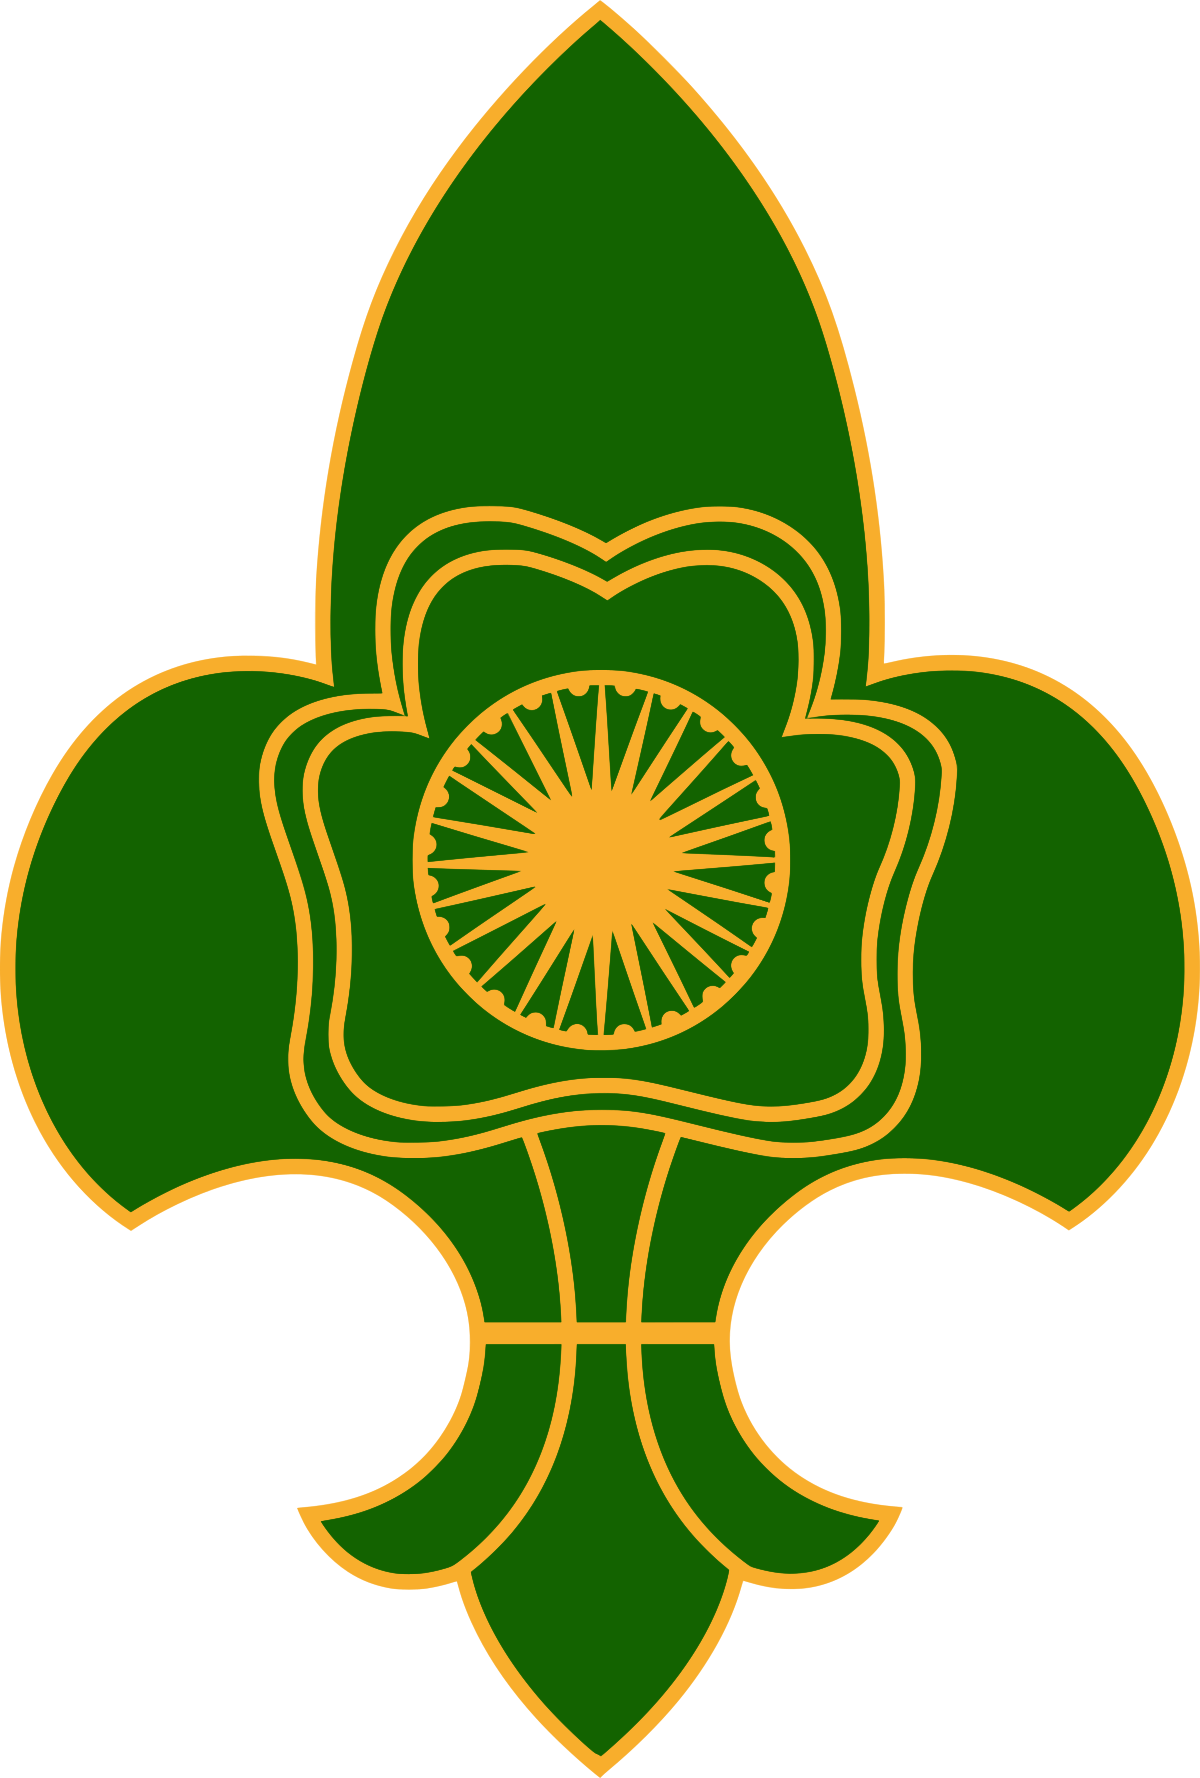 The Bharat Scouts and Guides Wikipedia Girl scout